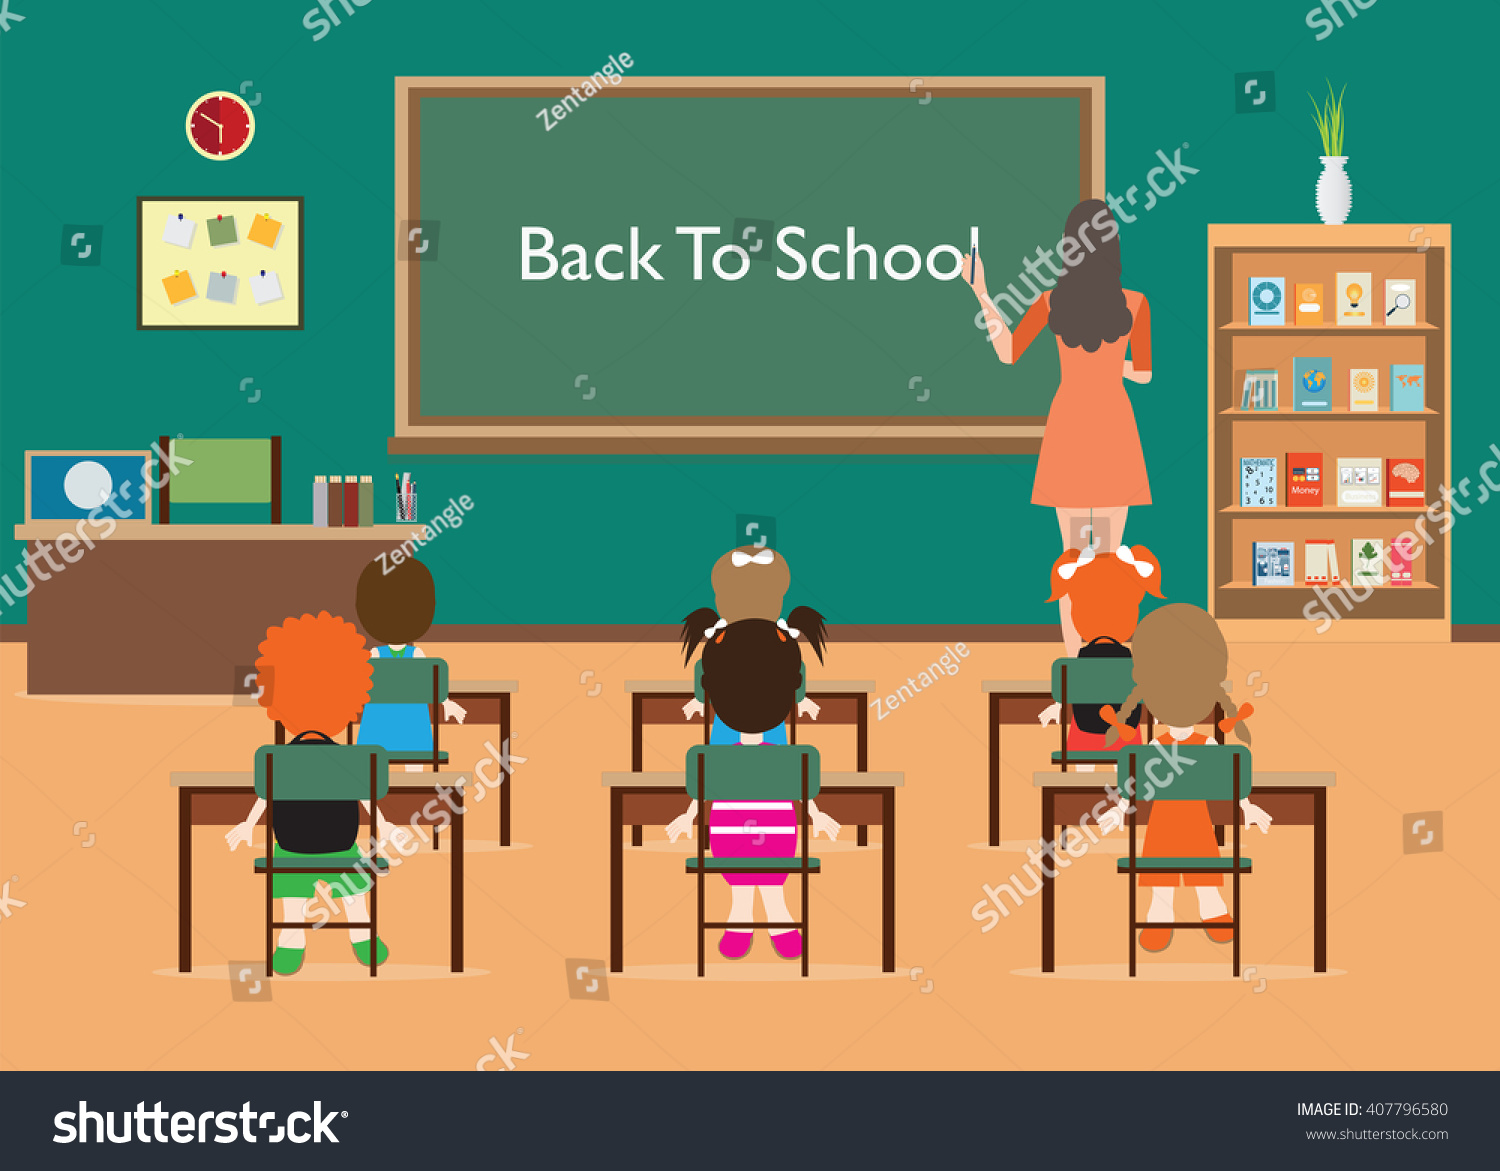 Back To School Classroom Interior With Little Students And Teacher Green Blackboard Table